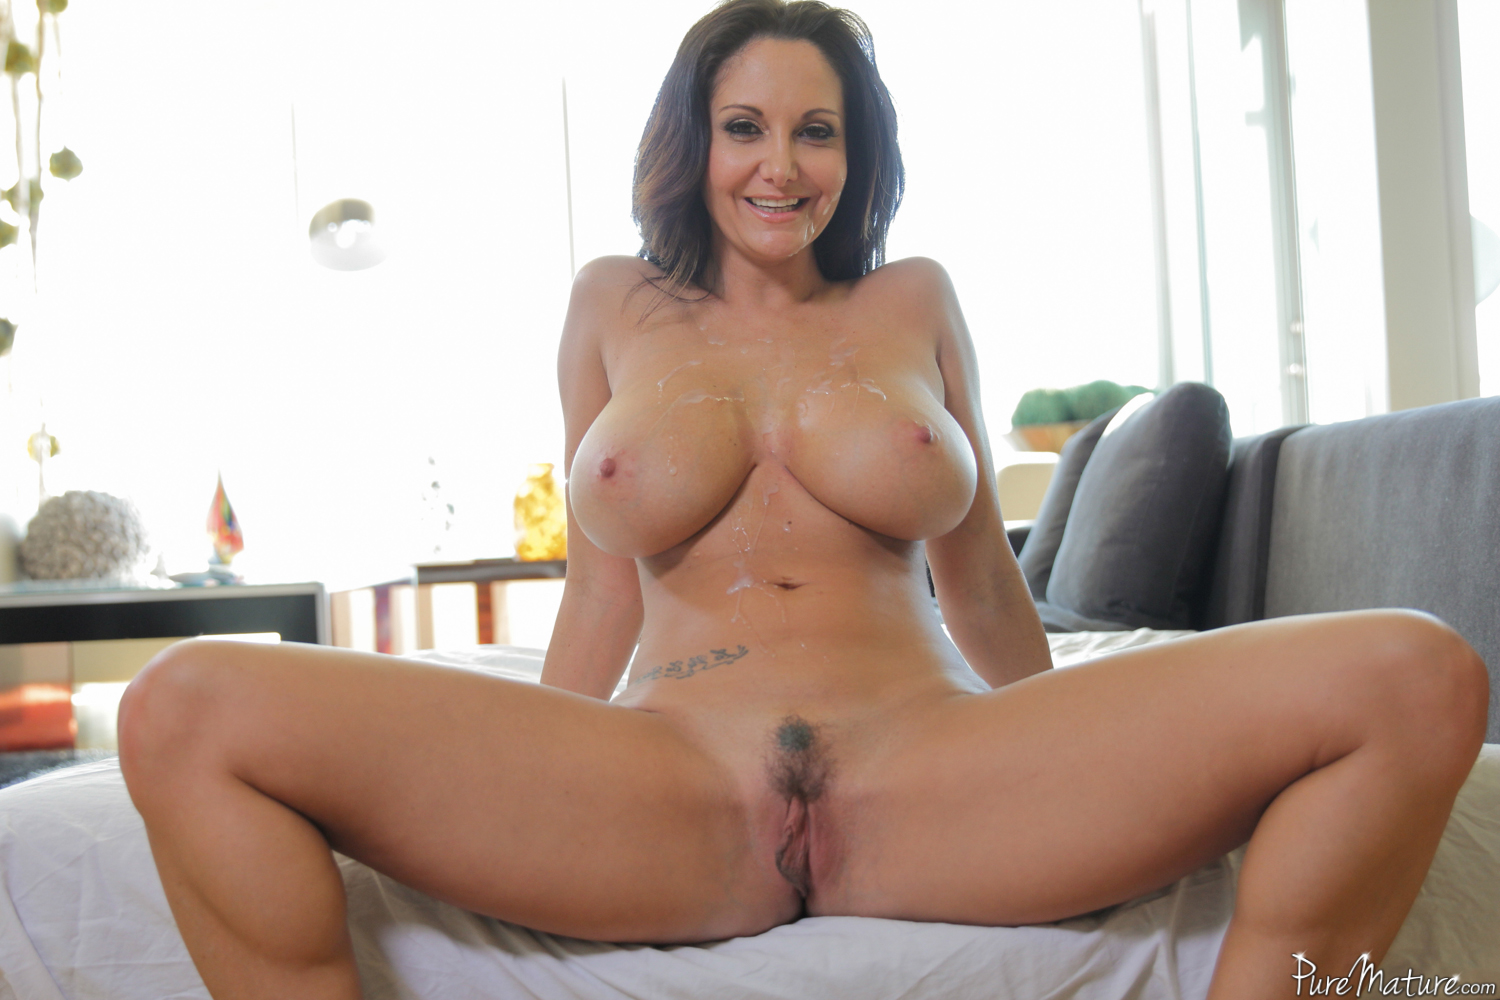 Hd puremature milf anissa kate gets her asshole blasted